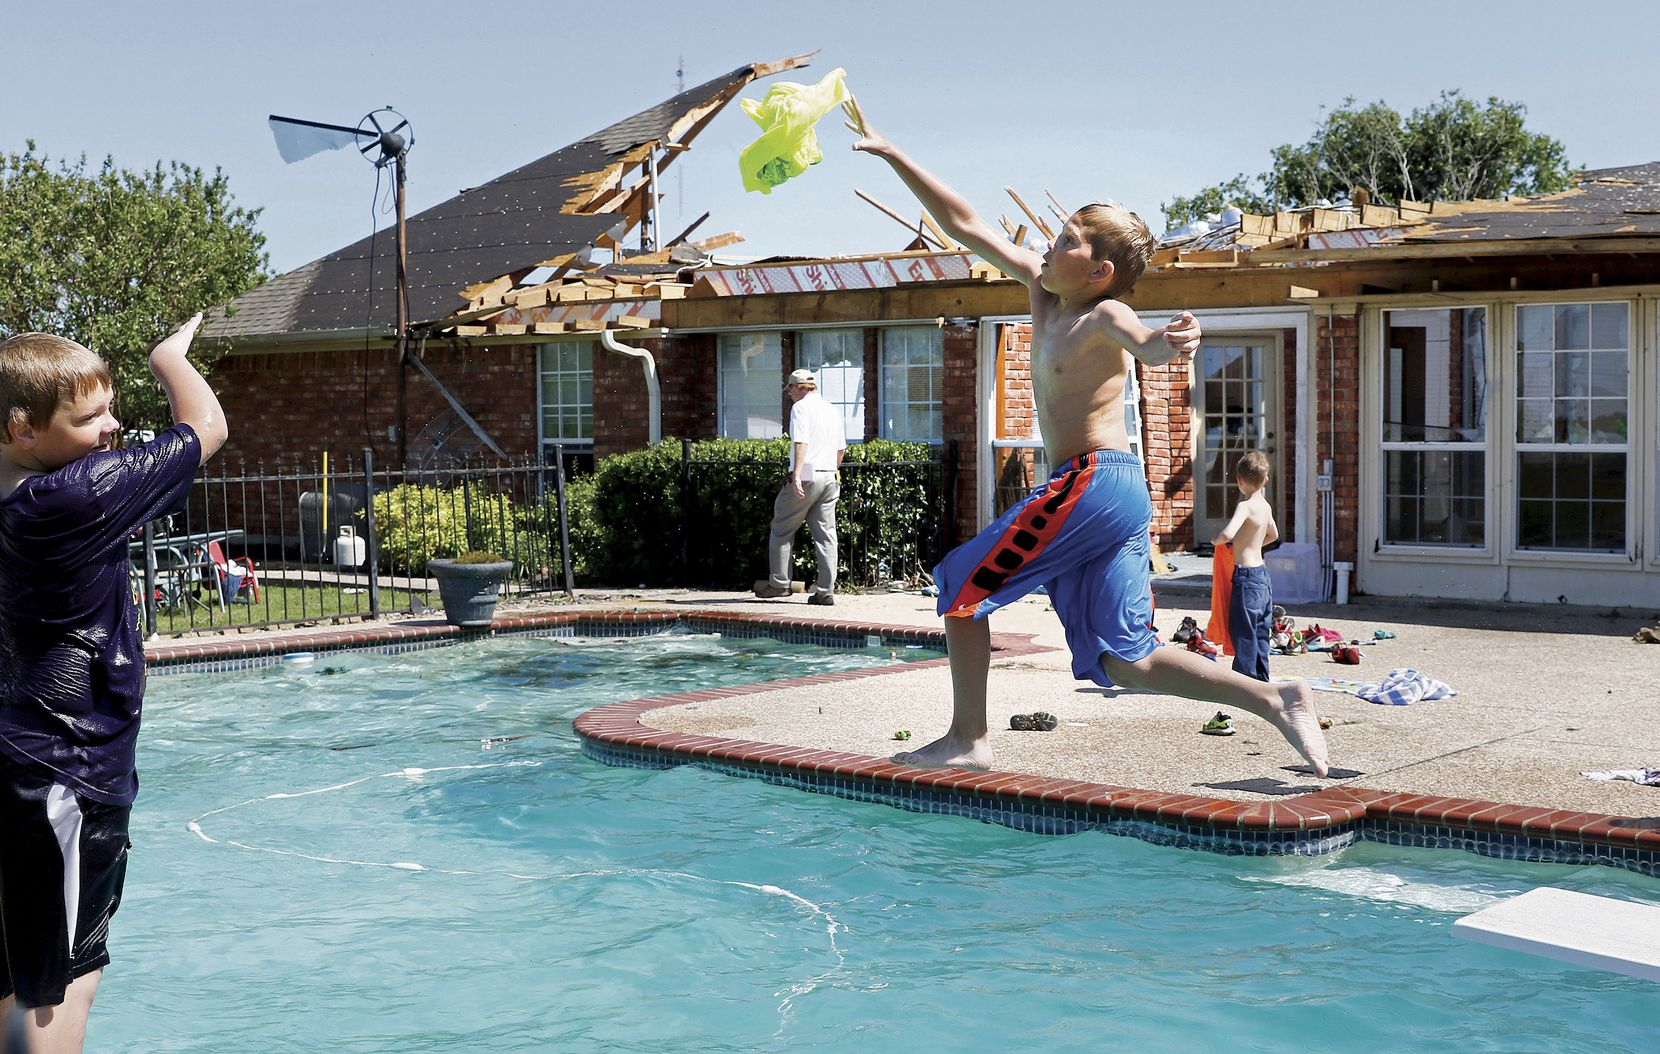 Jacob Campbell (left), 10, threw a wet T-shirt to Dax Foster, 10, as they swim at a home in the 200 block of Stark Lane in Sherman on April 27. The boys swam a day after a tornado took off part of the home's roof.